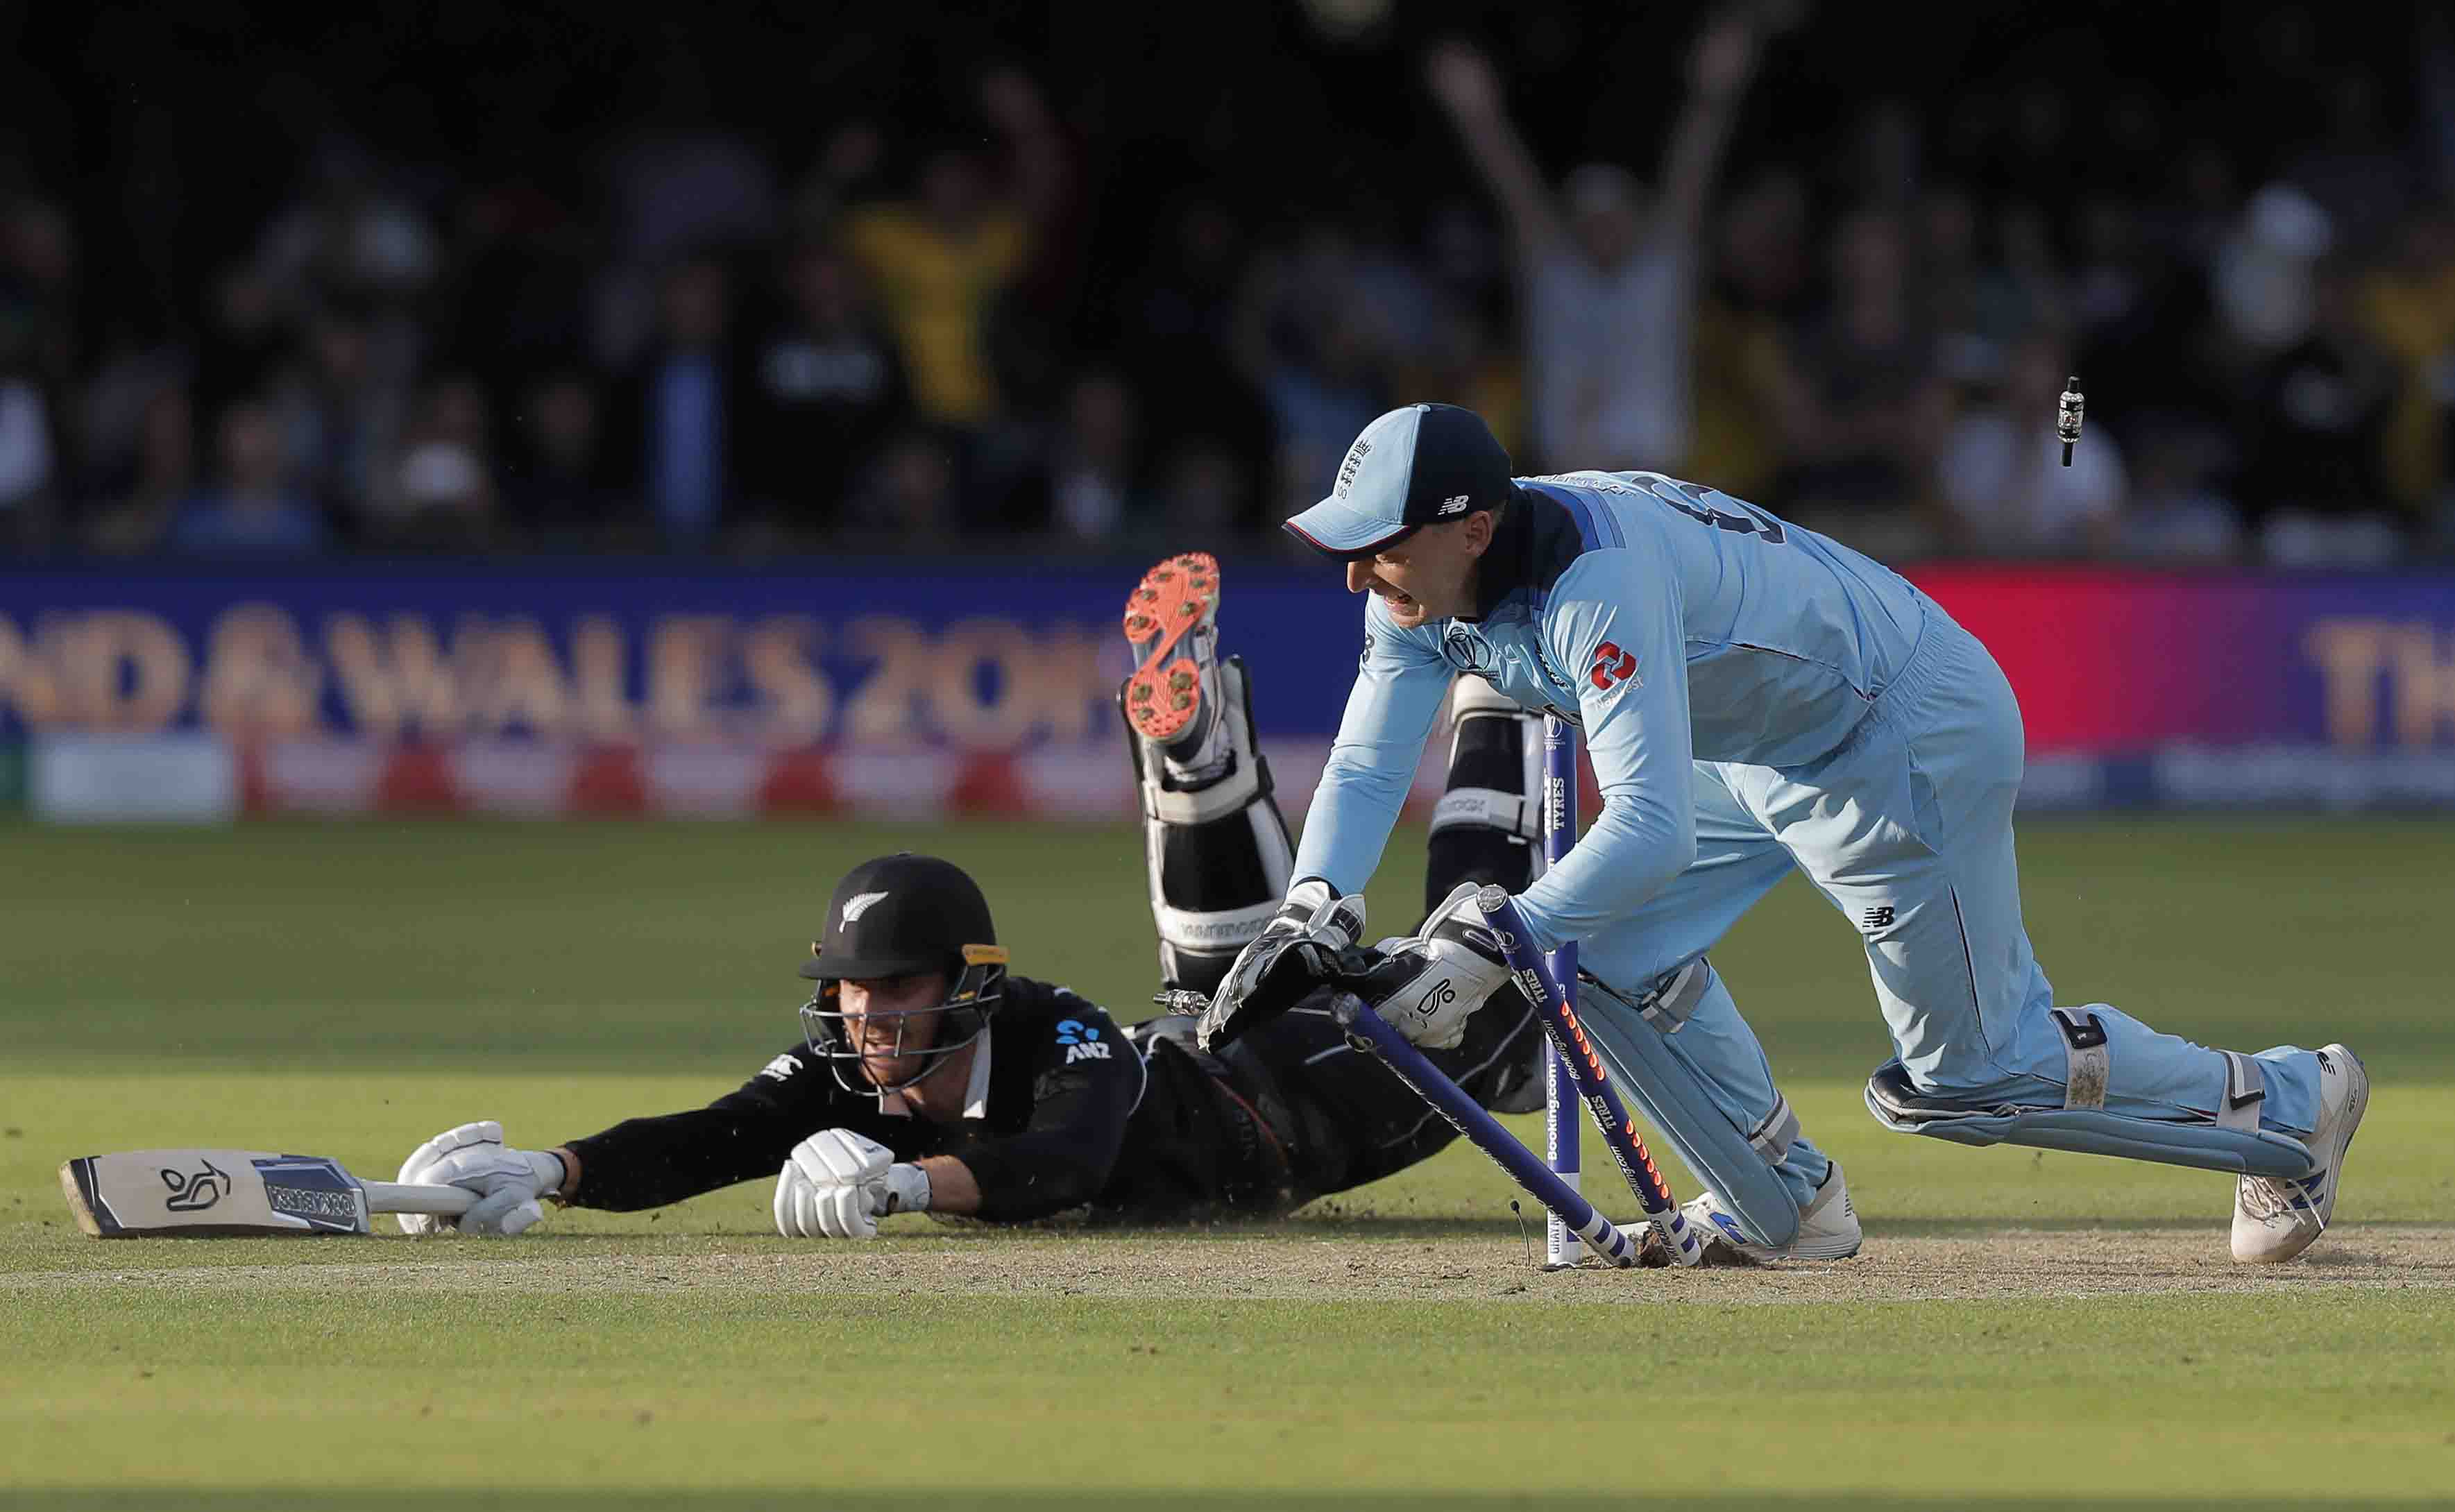 England wicketkeeper Jos Buttler runs out New Zealand's Martin Guptill off the last ball of the Super Over to secure victory for England at the ICC Men's Cricket World Cup Final at Lord's.